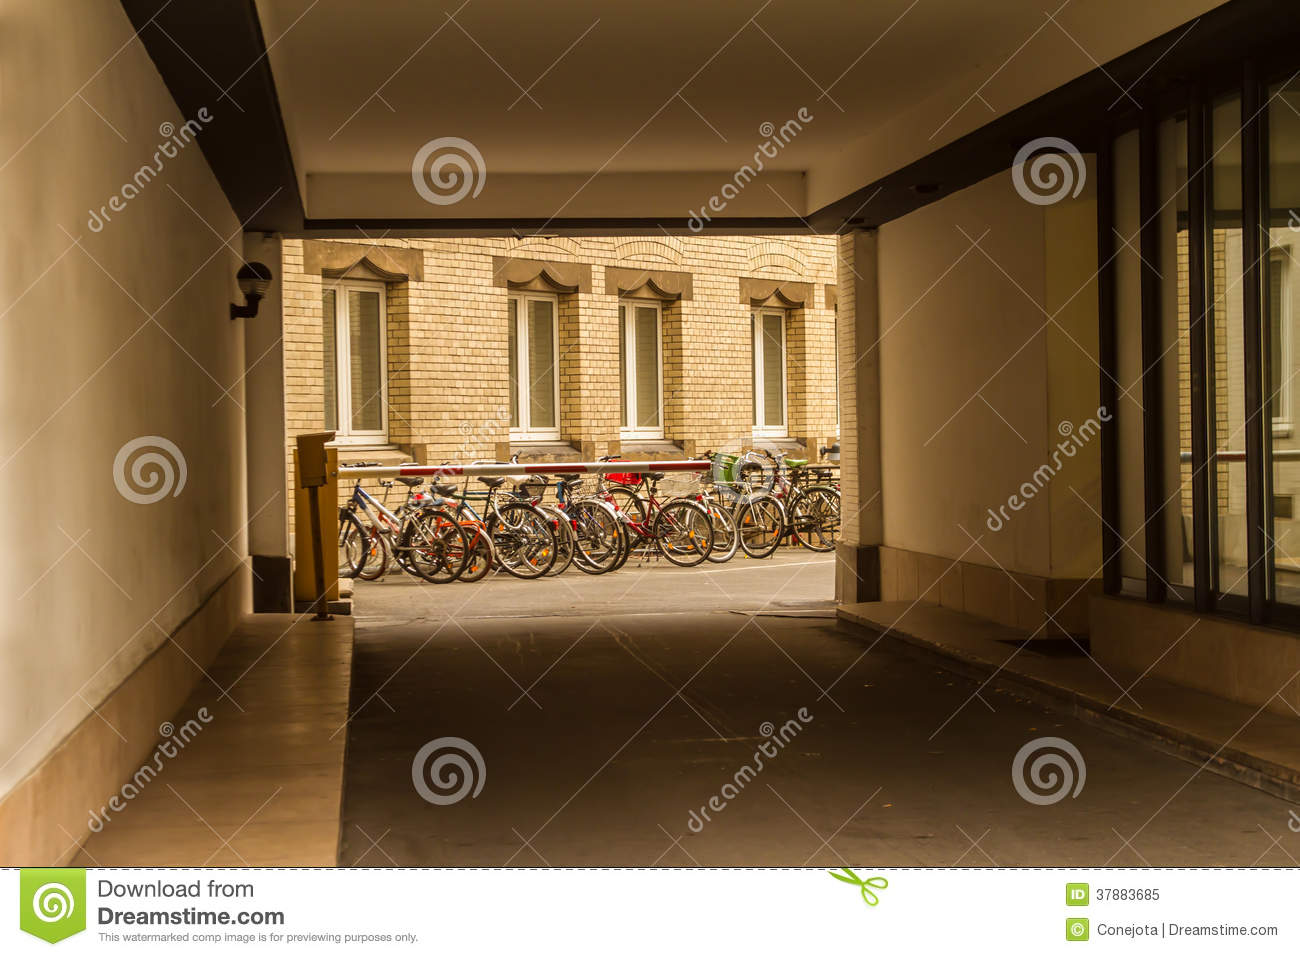 Bicycles in a backyard